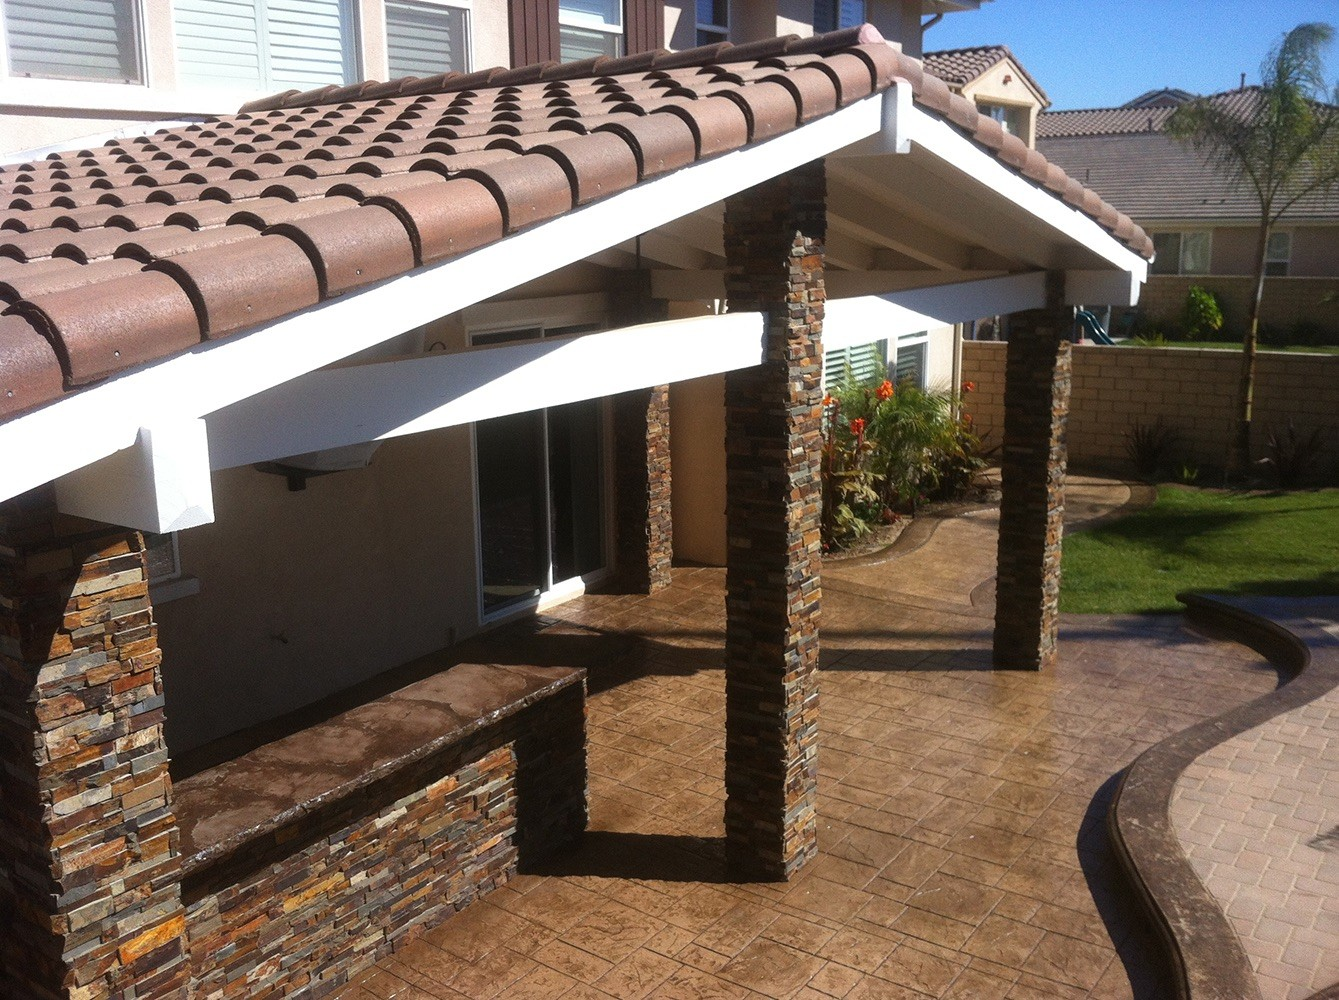 Patio Covers-Wellington Pool Screen Enclosure Installation and Repairs-We do screen enclosures, patios, pool screens, fences, aluminum roofs, professional screen building, Pool Screen Enclosures, Patio Screen Enclosures, Fences & Gates, Storm Shutters, Decks, Balconies & Railings, Installation, Repairs, and more